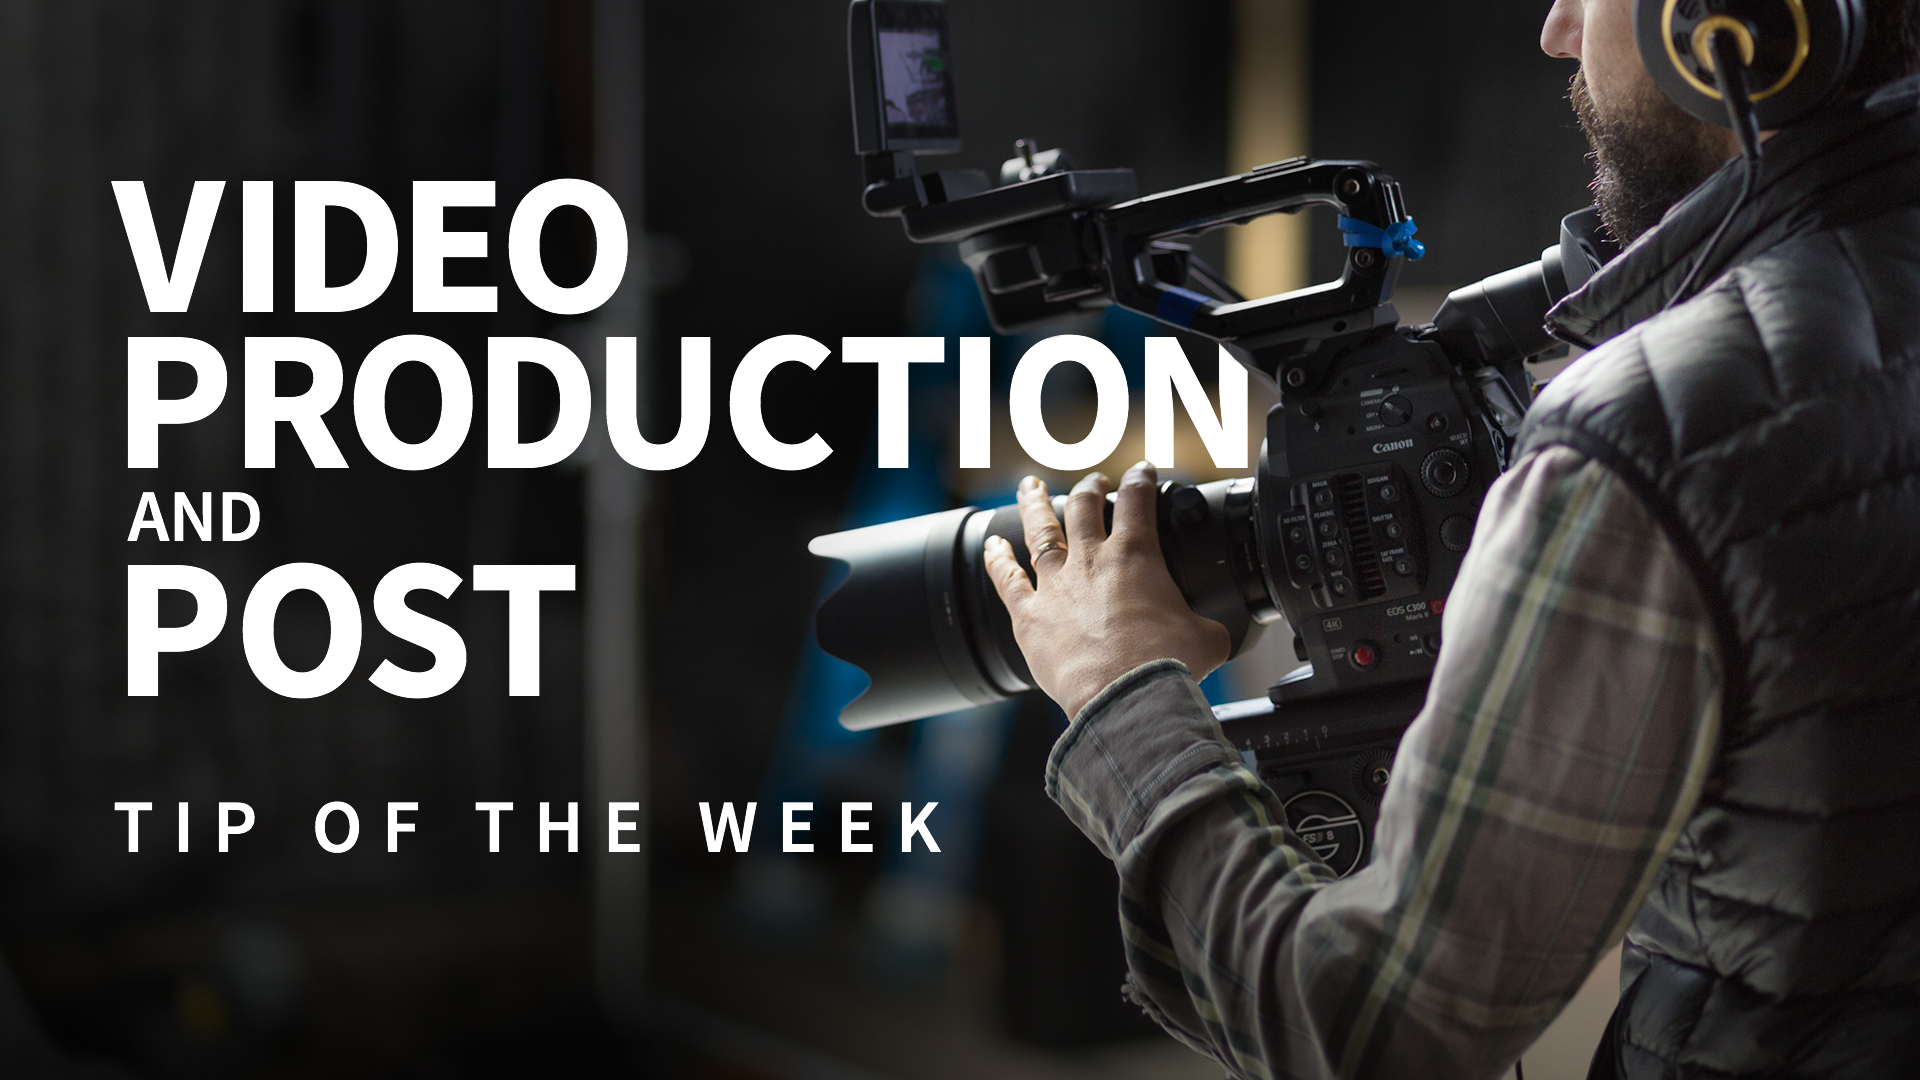 The key light: Video Production and Post Tip of the Week